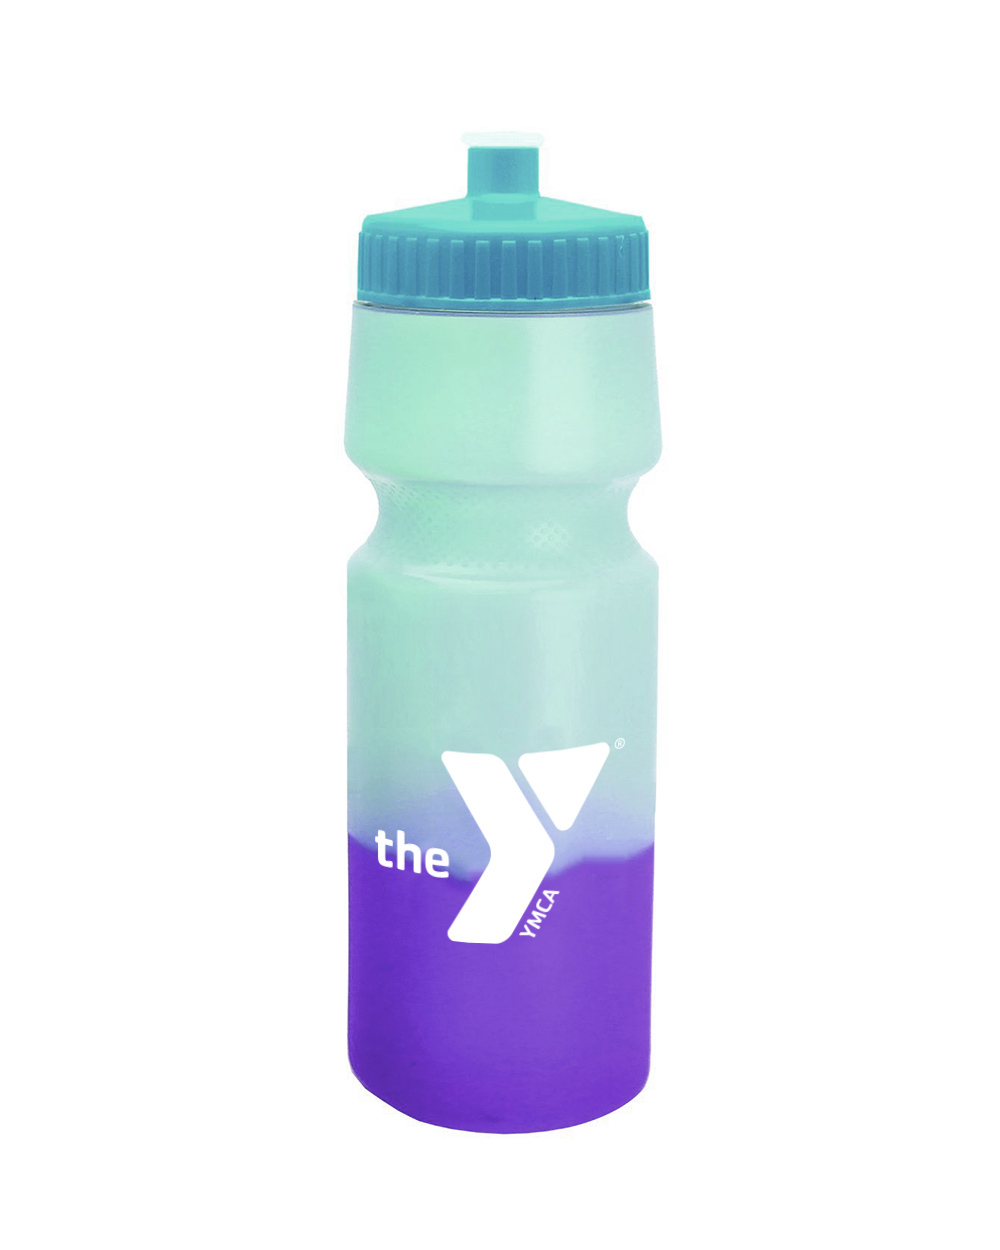 Drinkware subcategory image